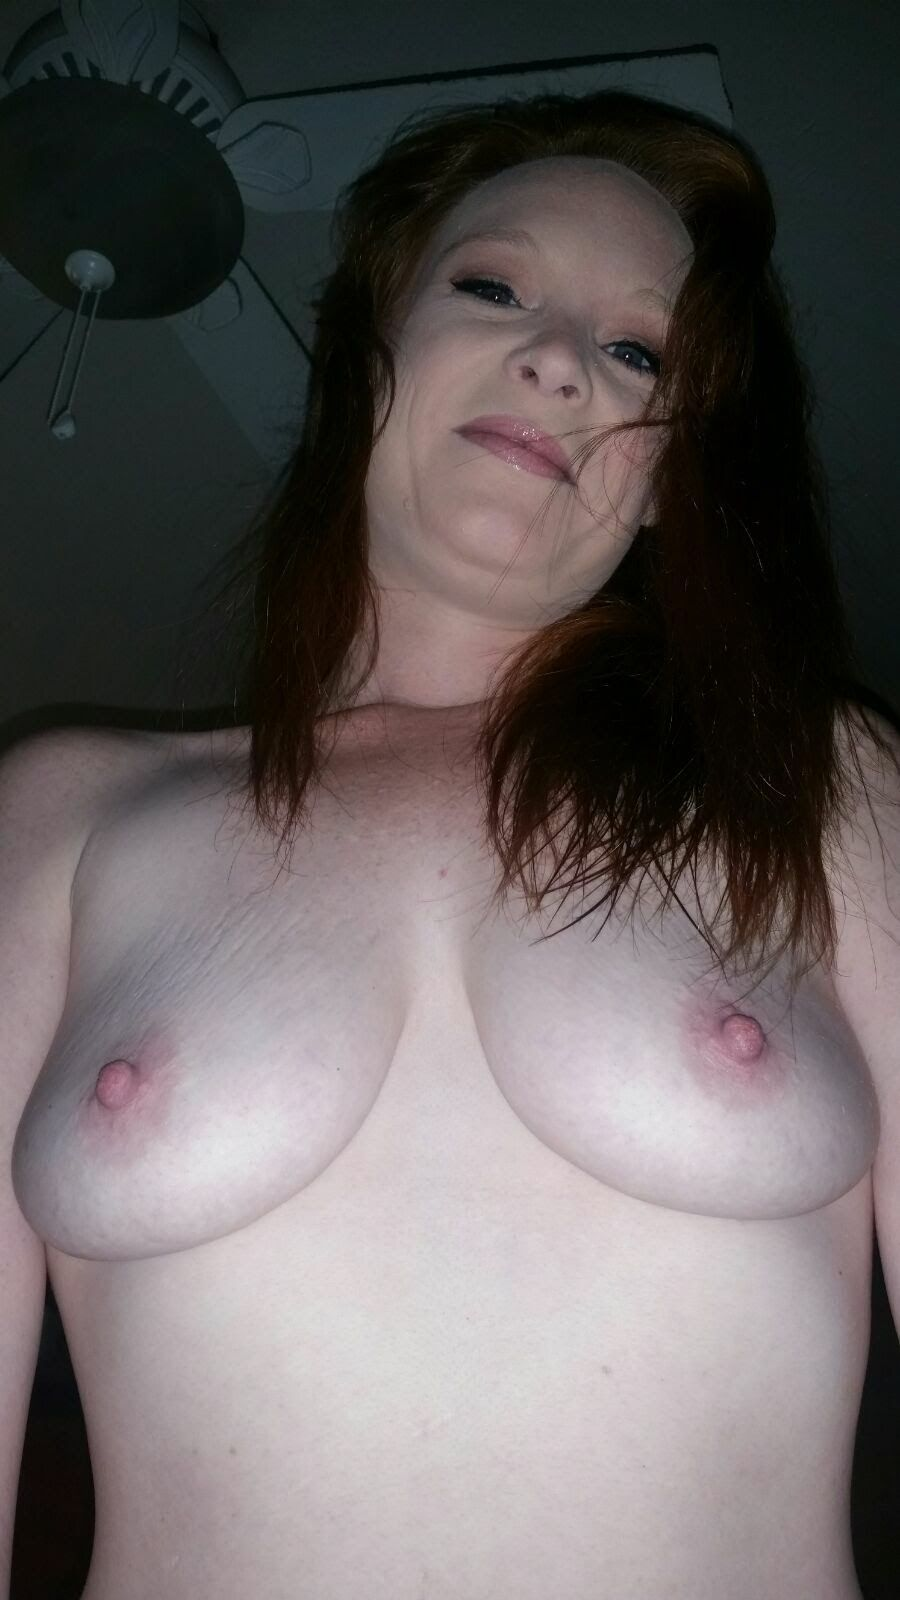 Just Me Topless Feeling Hot real nudity mature boobs flash